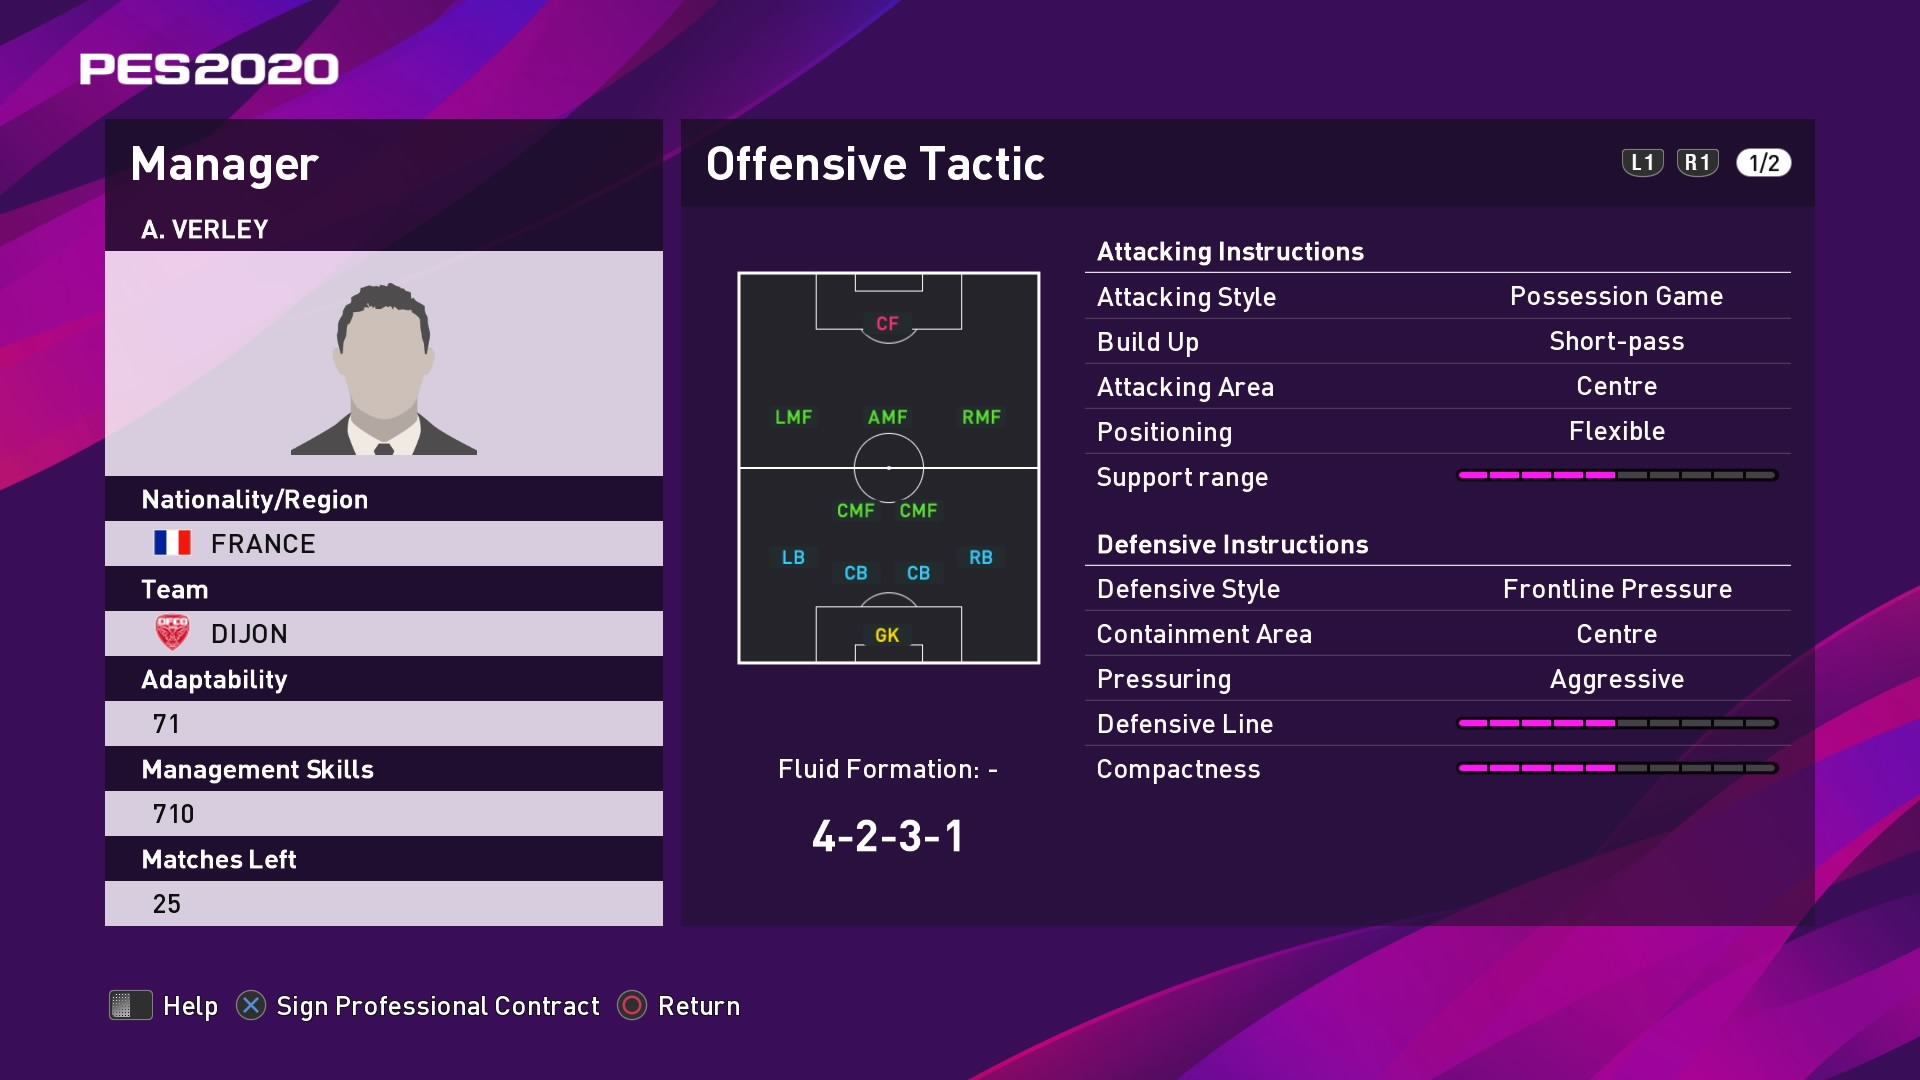 A. Verley (Stephane Jobard) Offensive Tactic in PES 2020 myClub